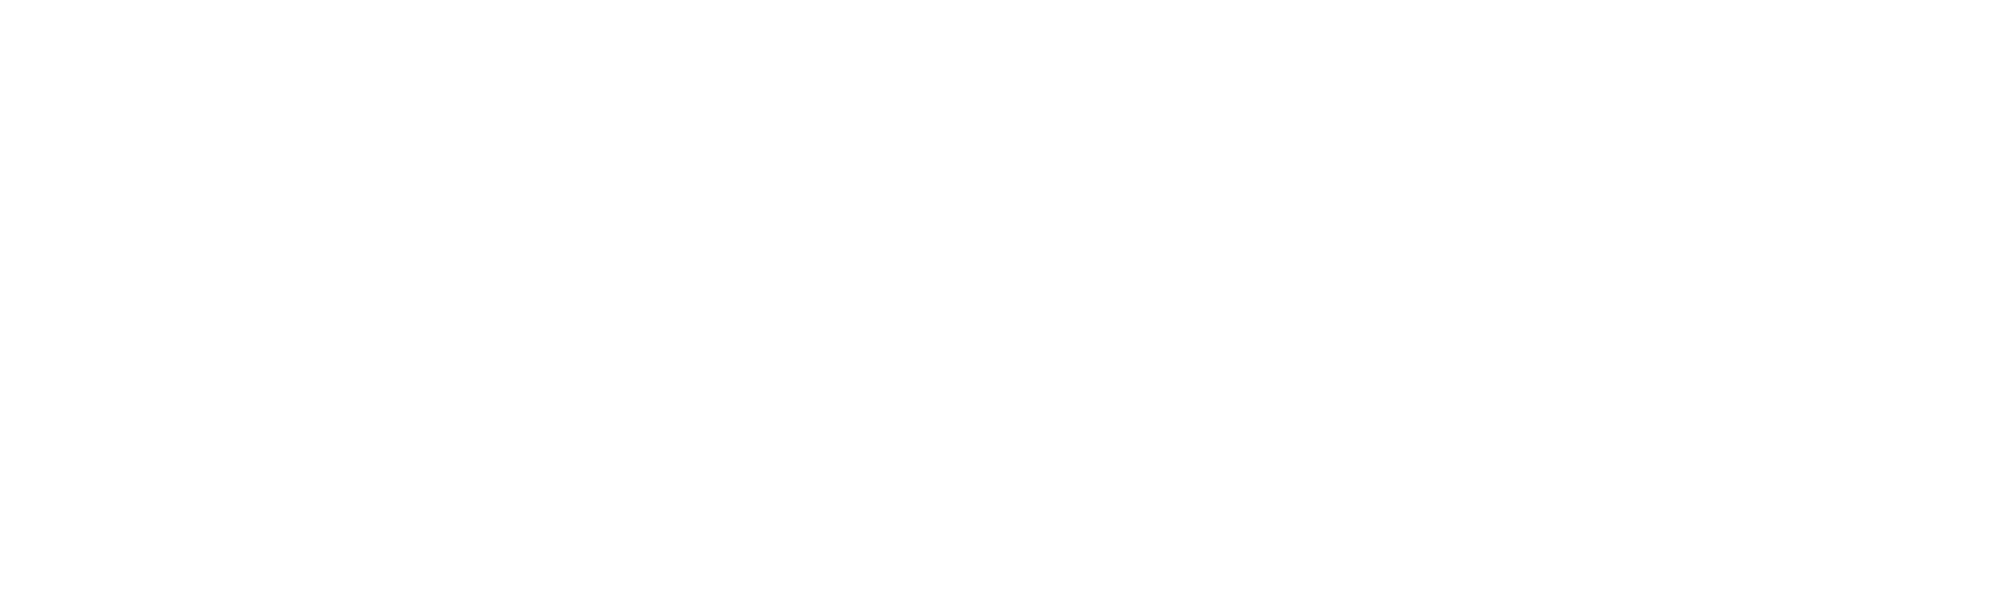 Yoga Within-logo-white October 2017.png